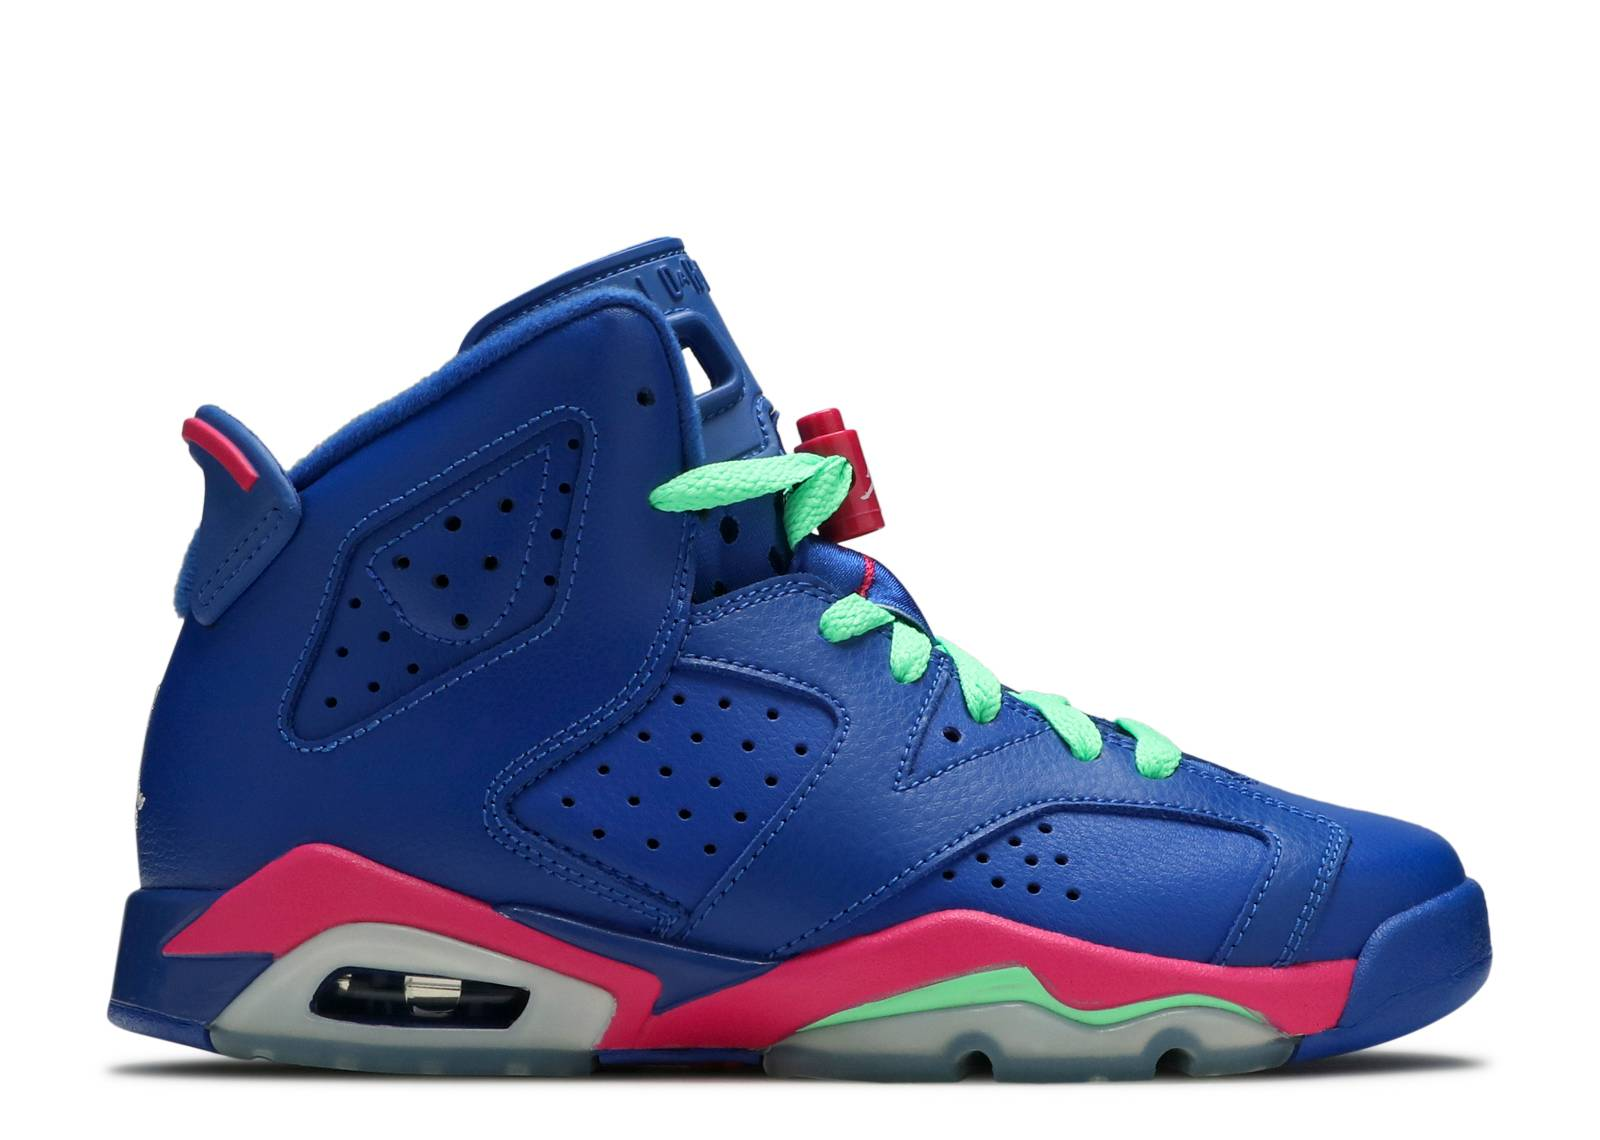 Air Jordan 6 Retro (GS) 'Game Royal' - 543390-439 - Size 6.5 -